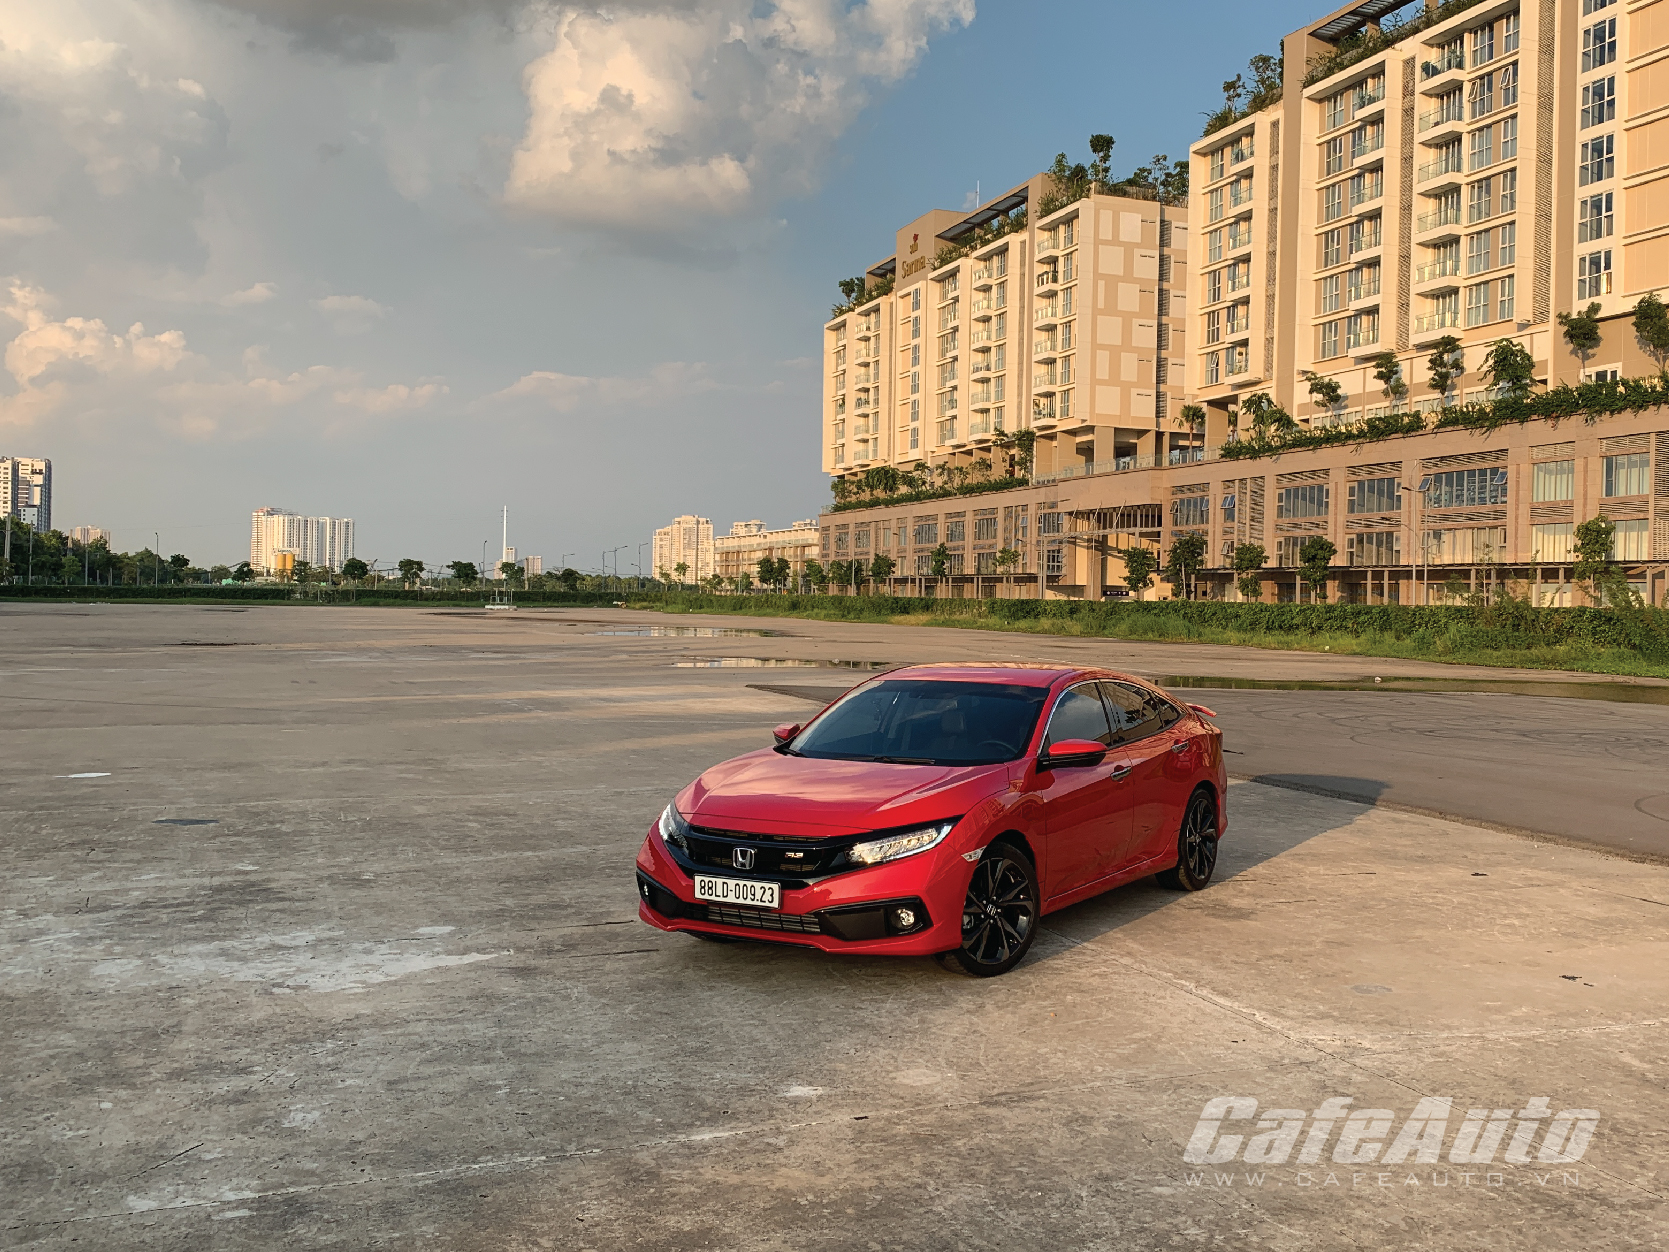 honda-civic-rs-co-them-mau-moi-dam-chat-the-thao